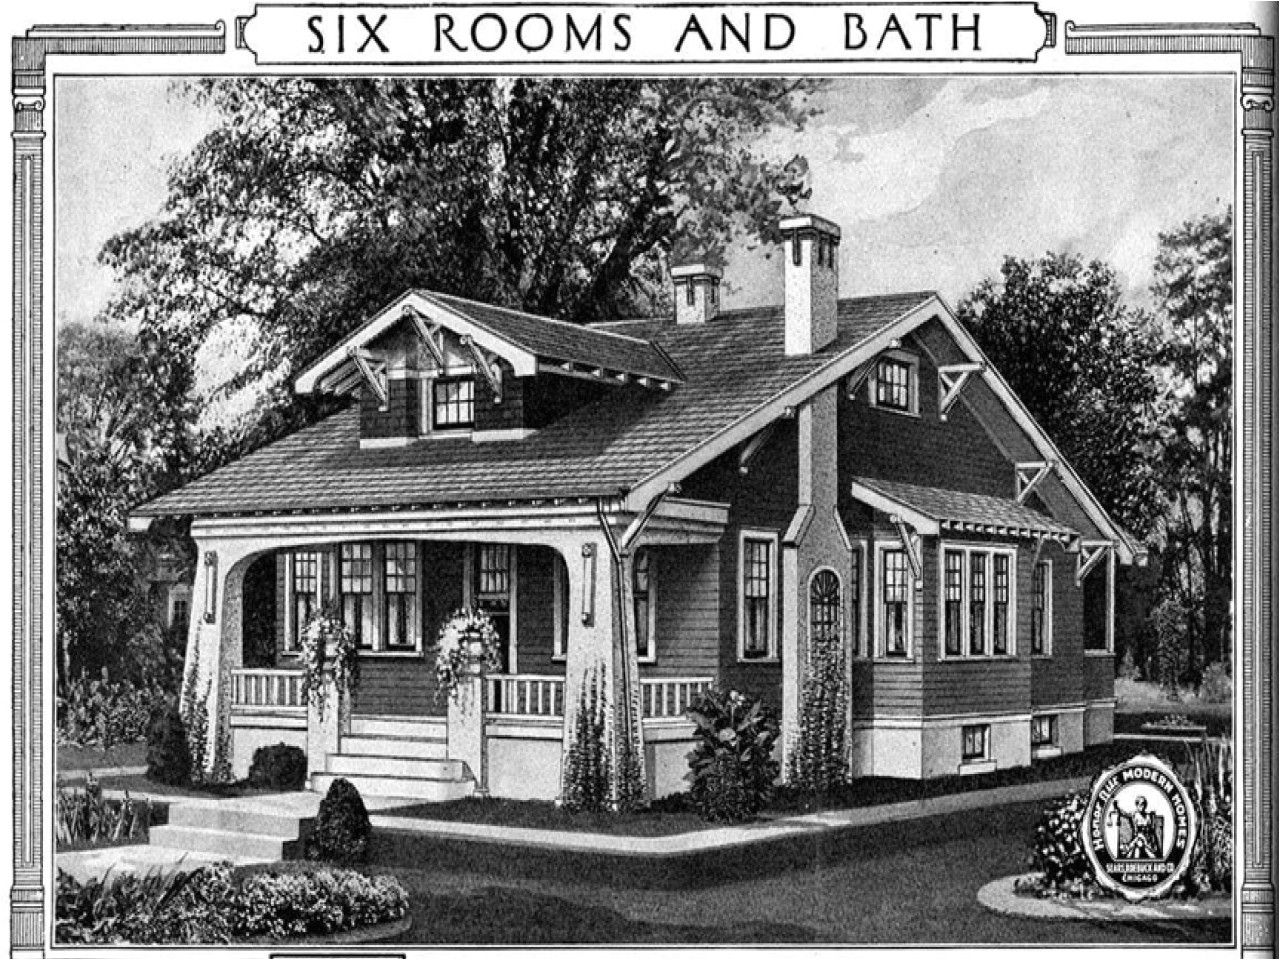 029731836c4fdc54 california craftsman style homes sears craftsman style home plans